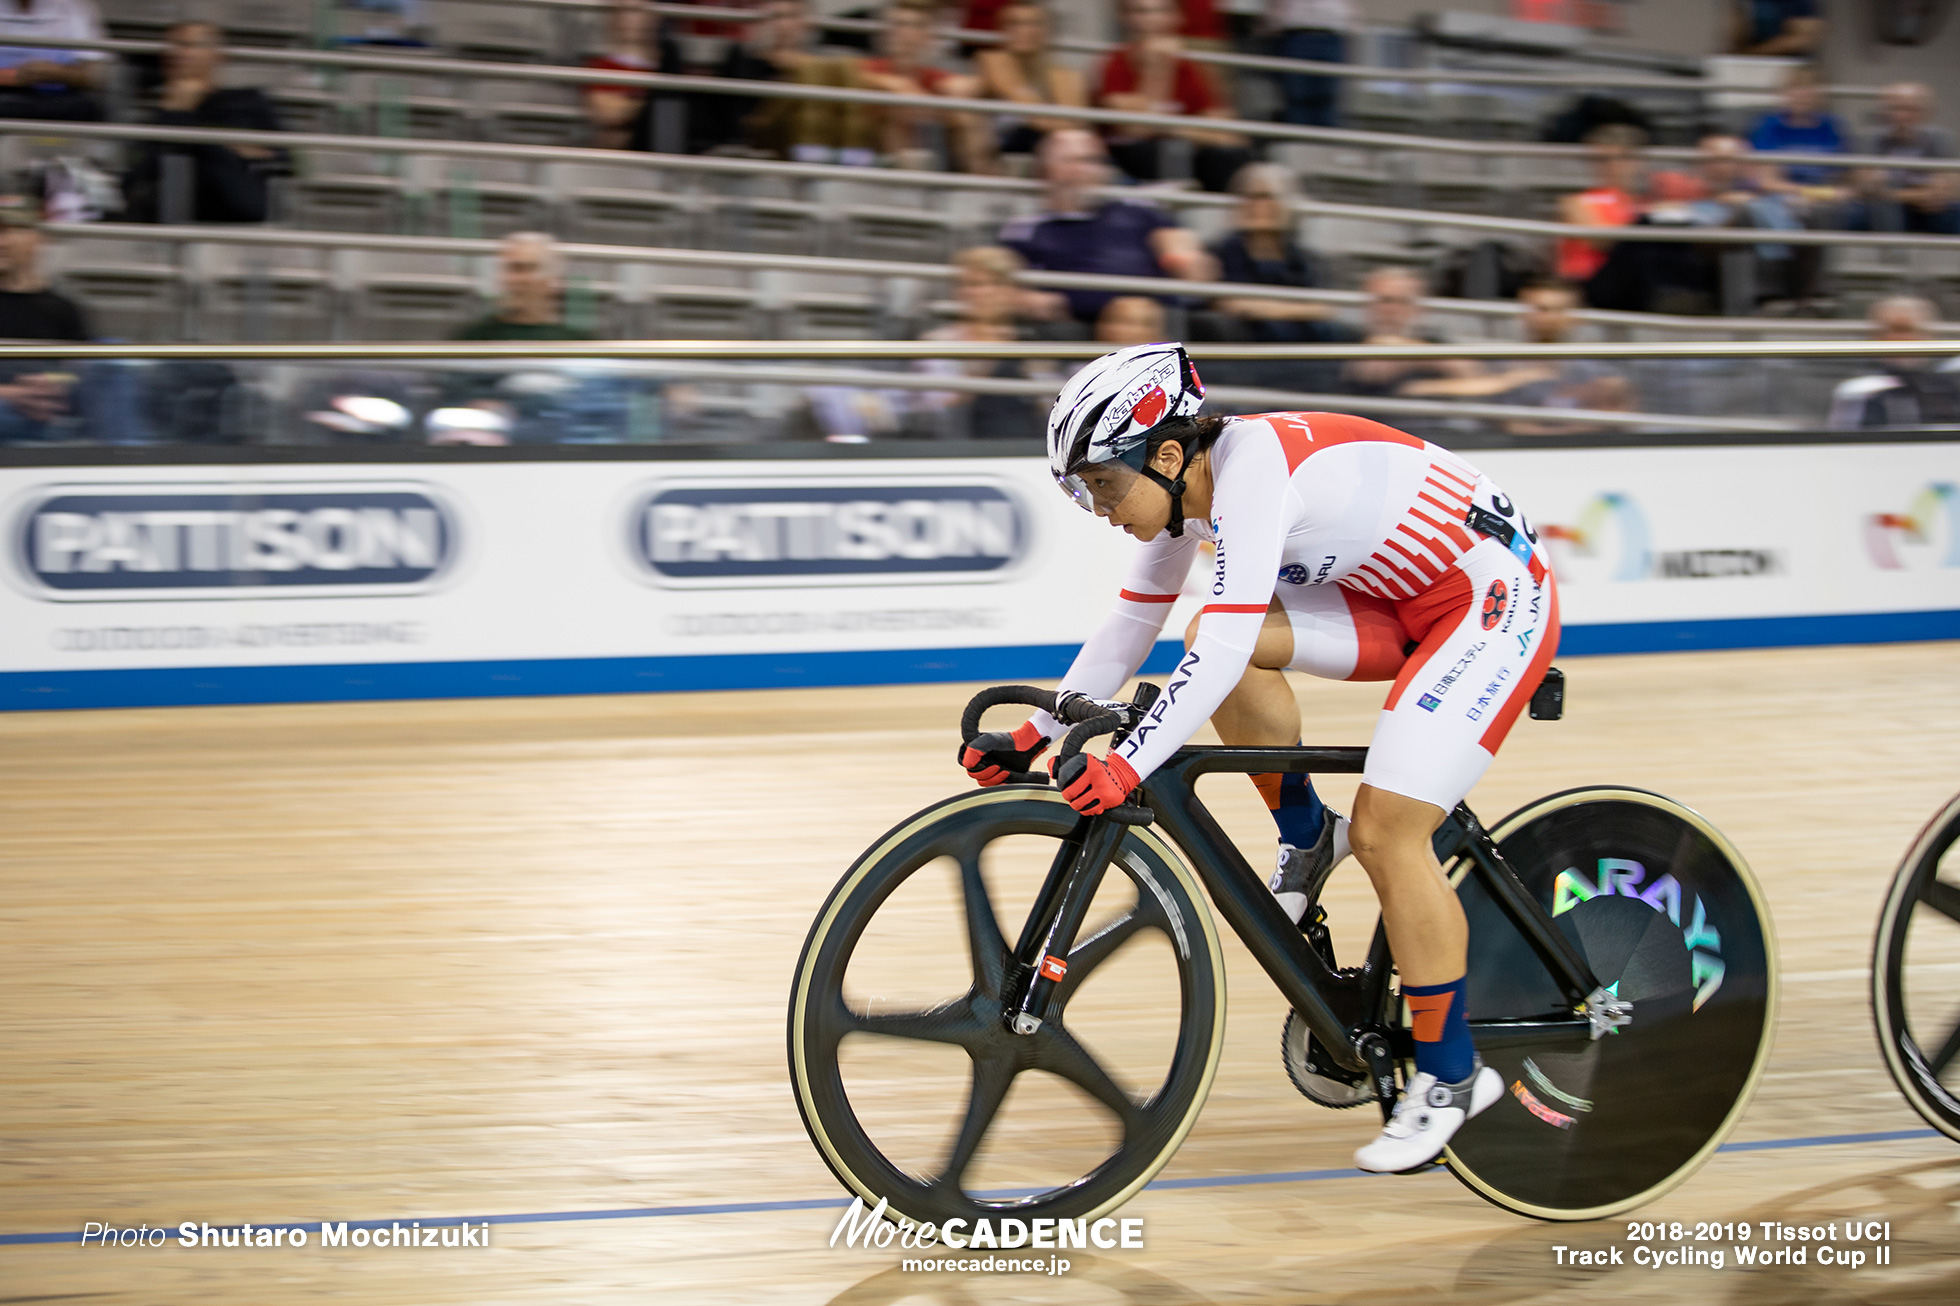 2018-2019 Tissot UCI Track Cycling World Cup II Women's Omnium I Tempo Race